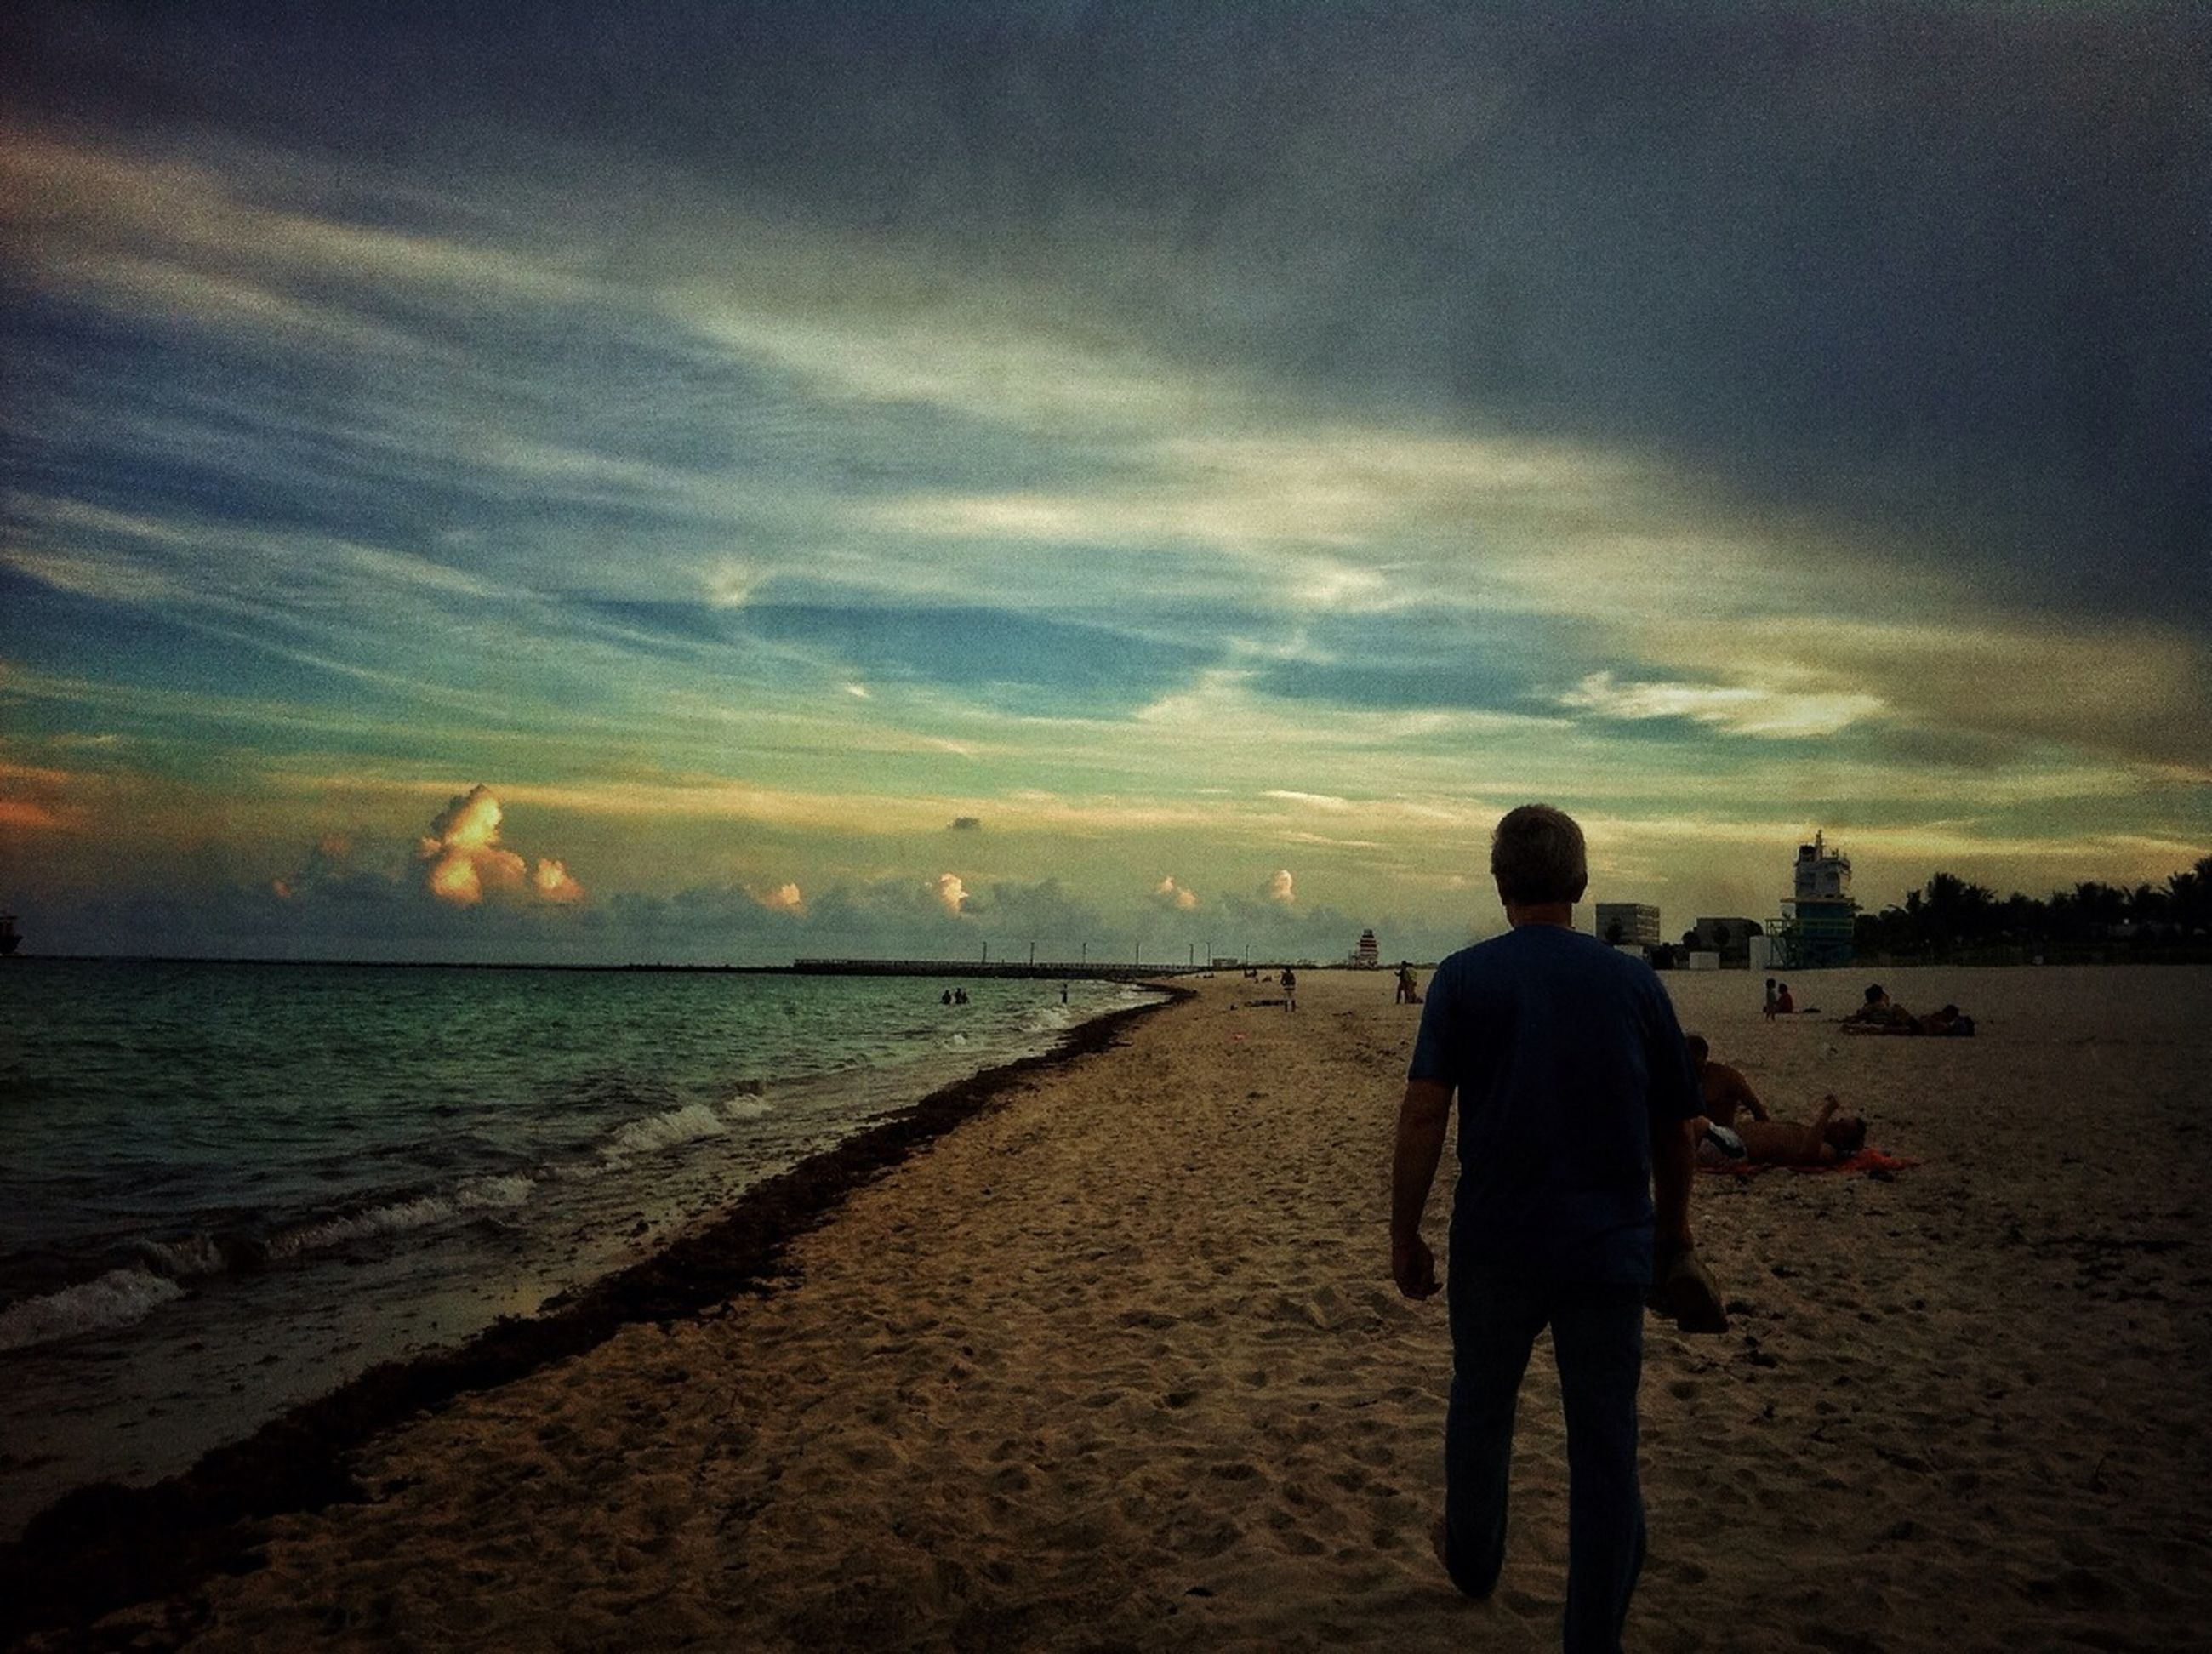 rear view, sea, beach, full length, water, lifestyles, shore, leisure activity, sky, horizon over water, standing, men, sunset, tranquil scene, scenics, beauty in nature, tranquility, walking